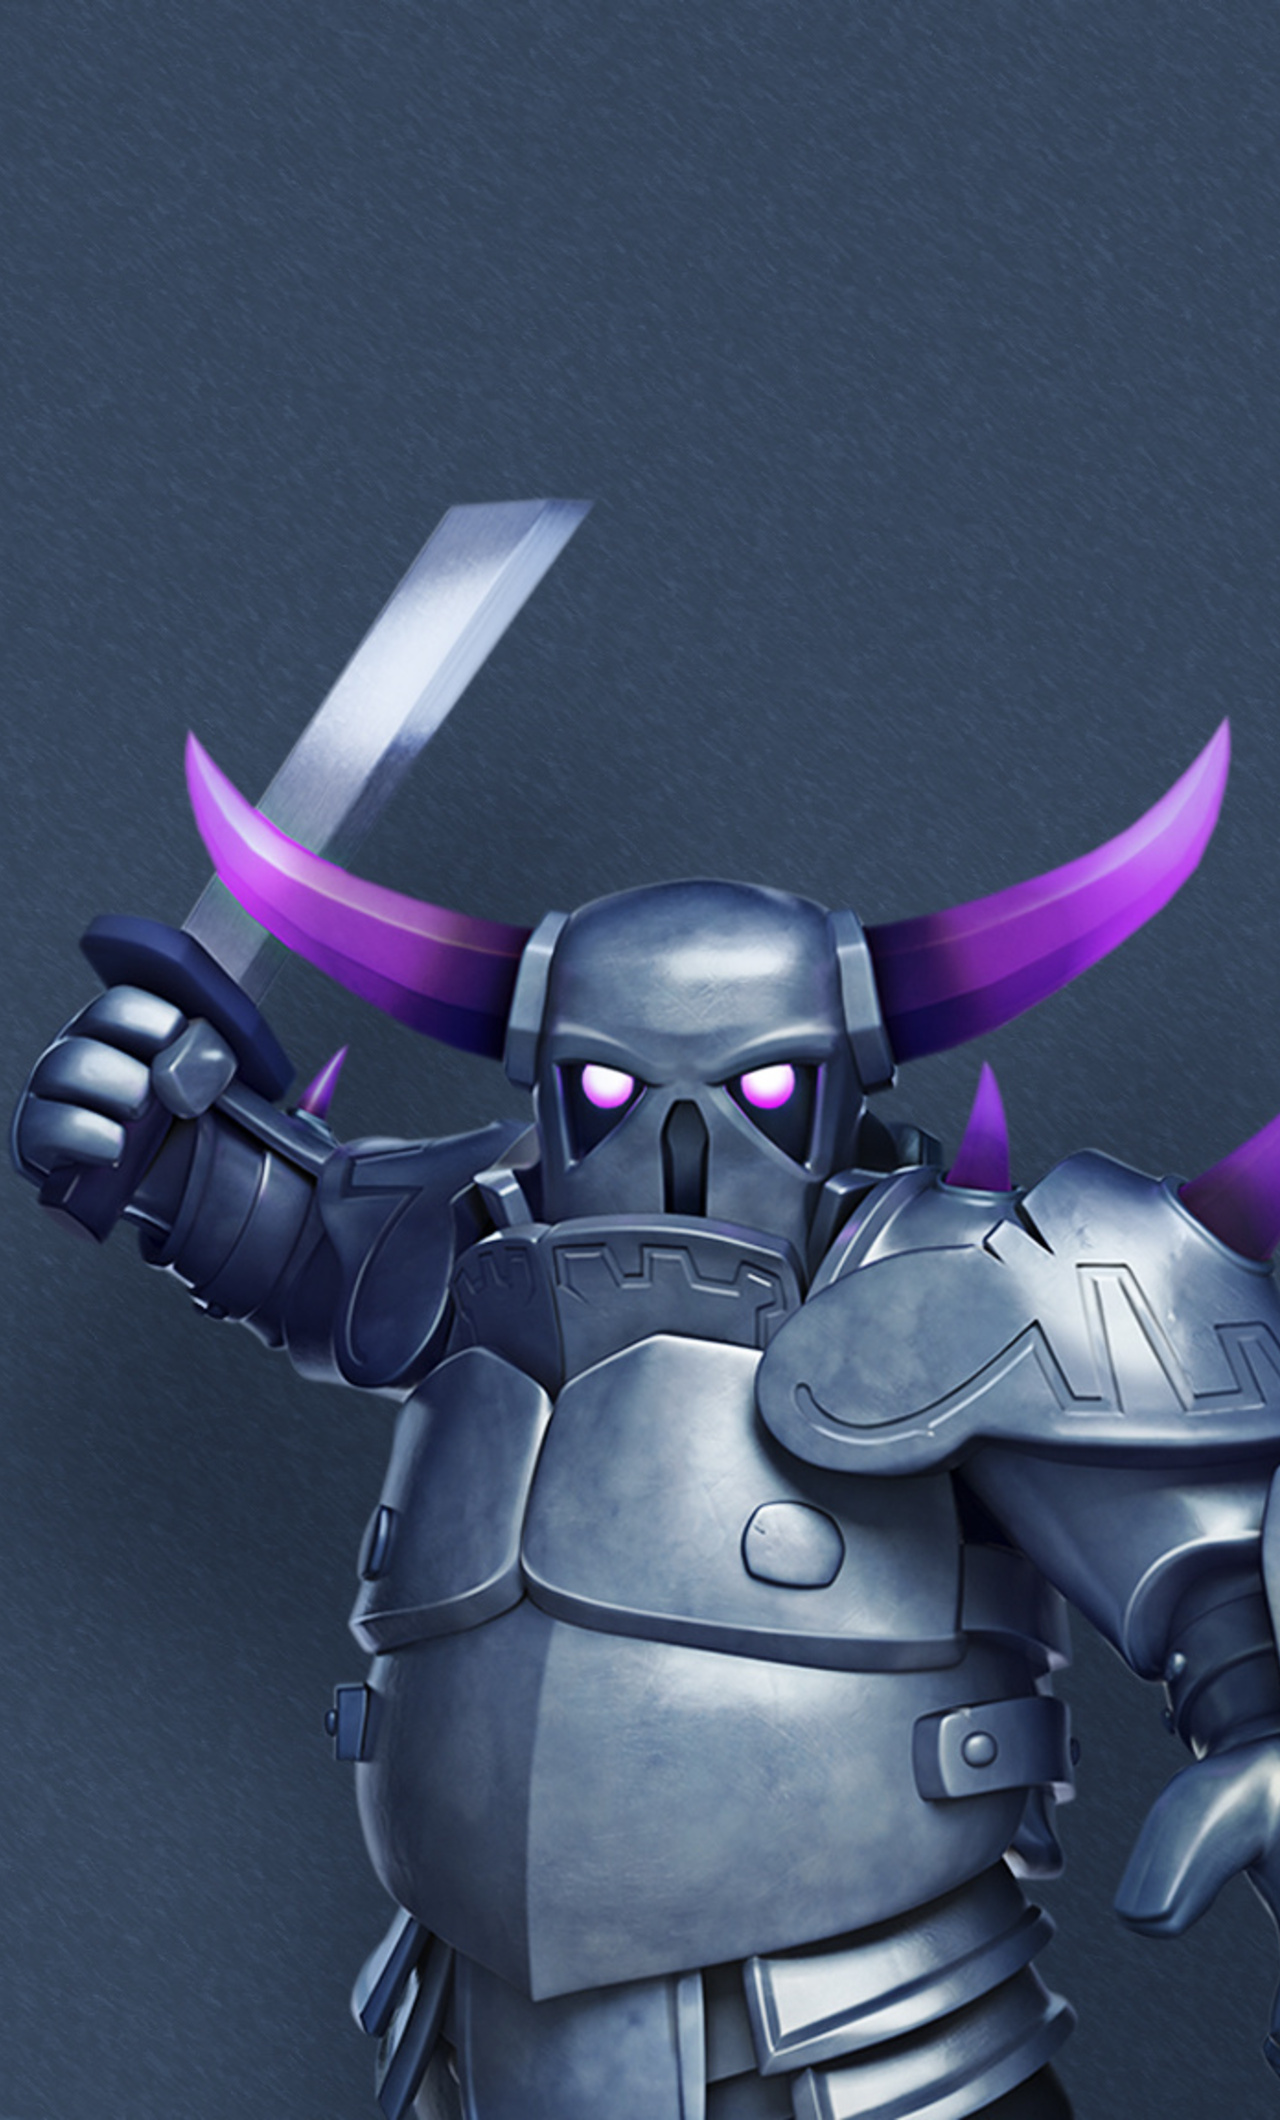 1280x2120 Pekka Clash Of Clans Iphone 6 Hd 4k Wallpapers Images Backgrounds Photos And Pictures